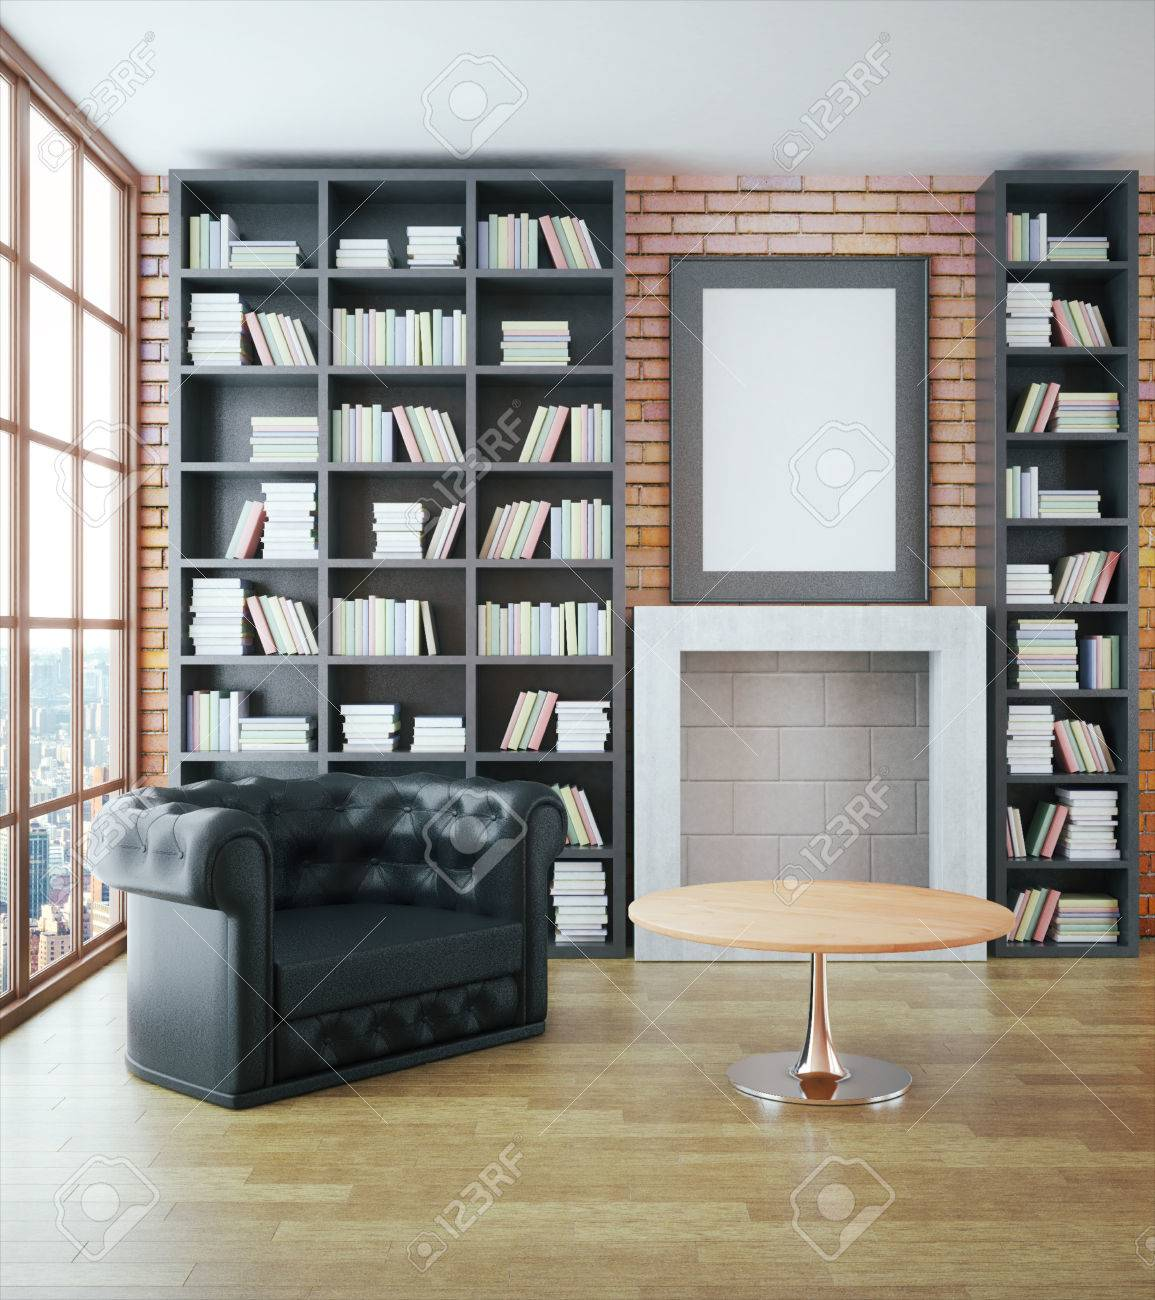 Luxurious library interior with black leather sofa, bookshelves,..